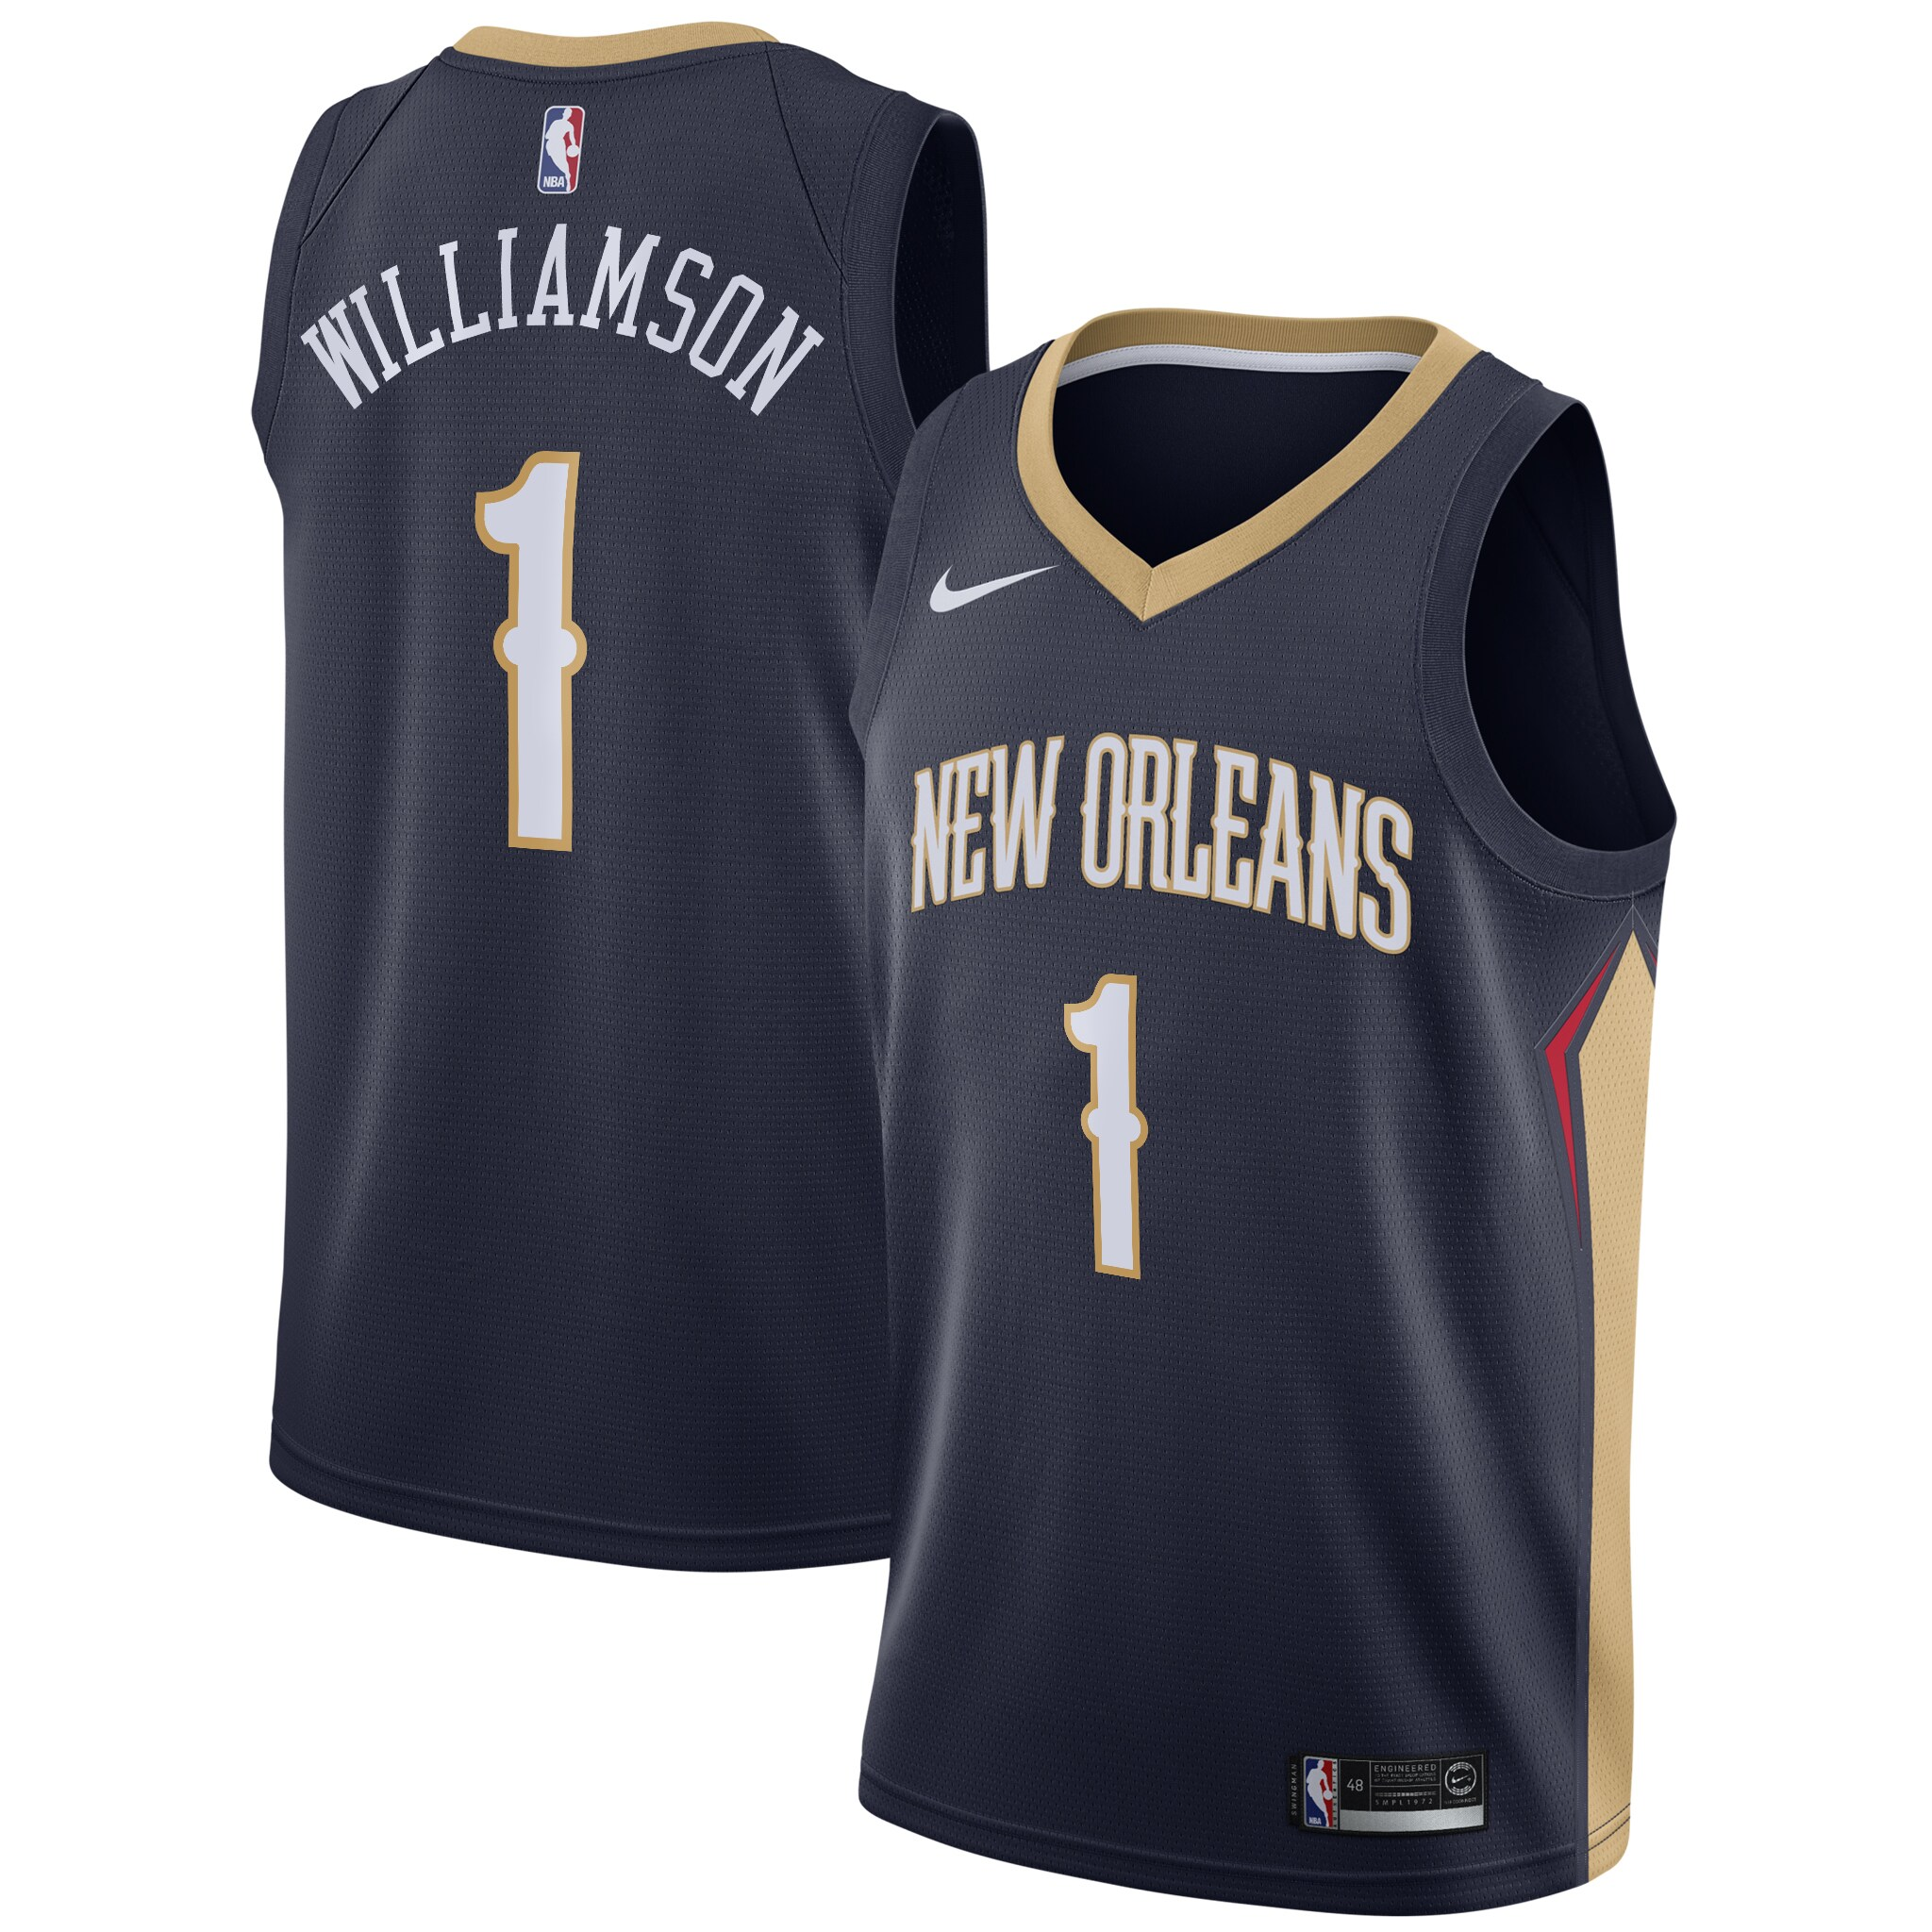 Zion Williamson New Orleans Pelicans Nike 2019 NBA Draft First Round Pick Swingman Jersey Navy - Icon Edition